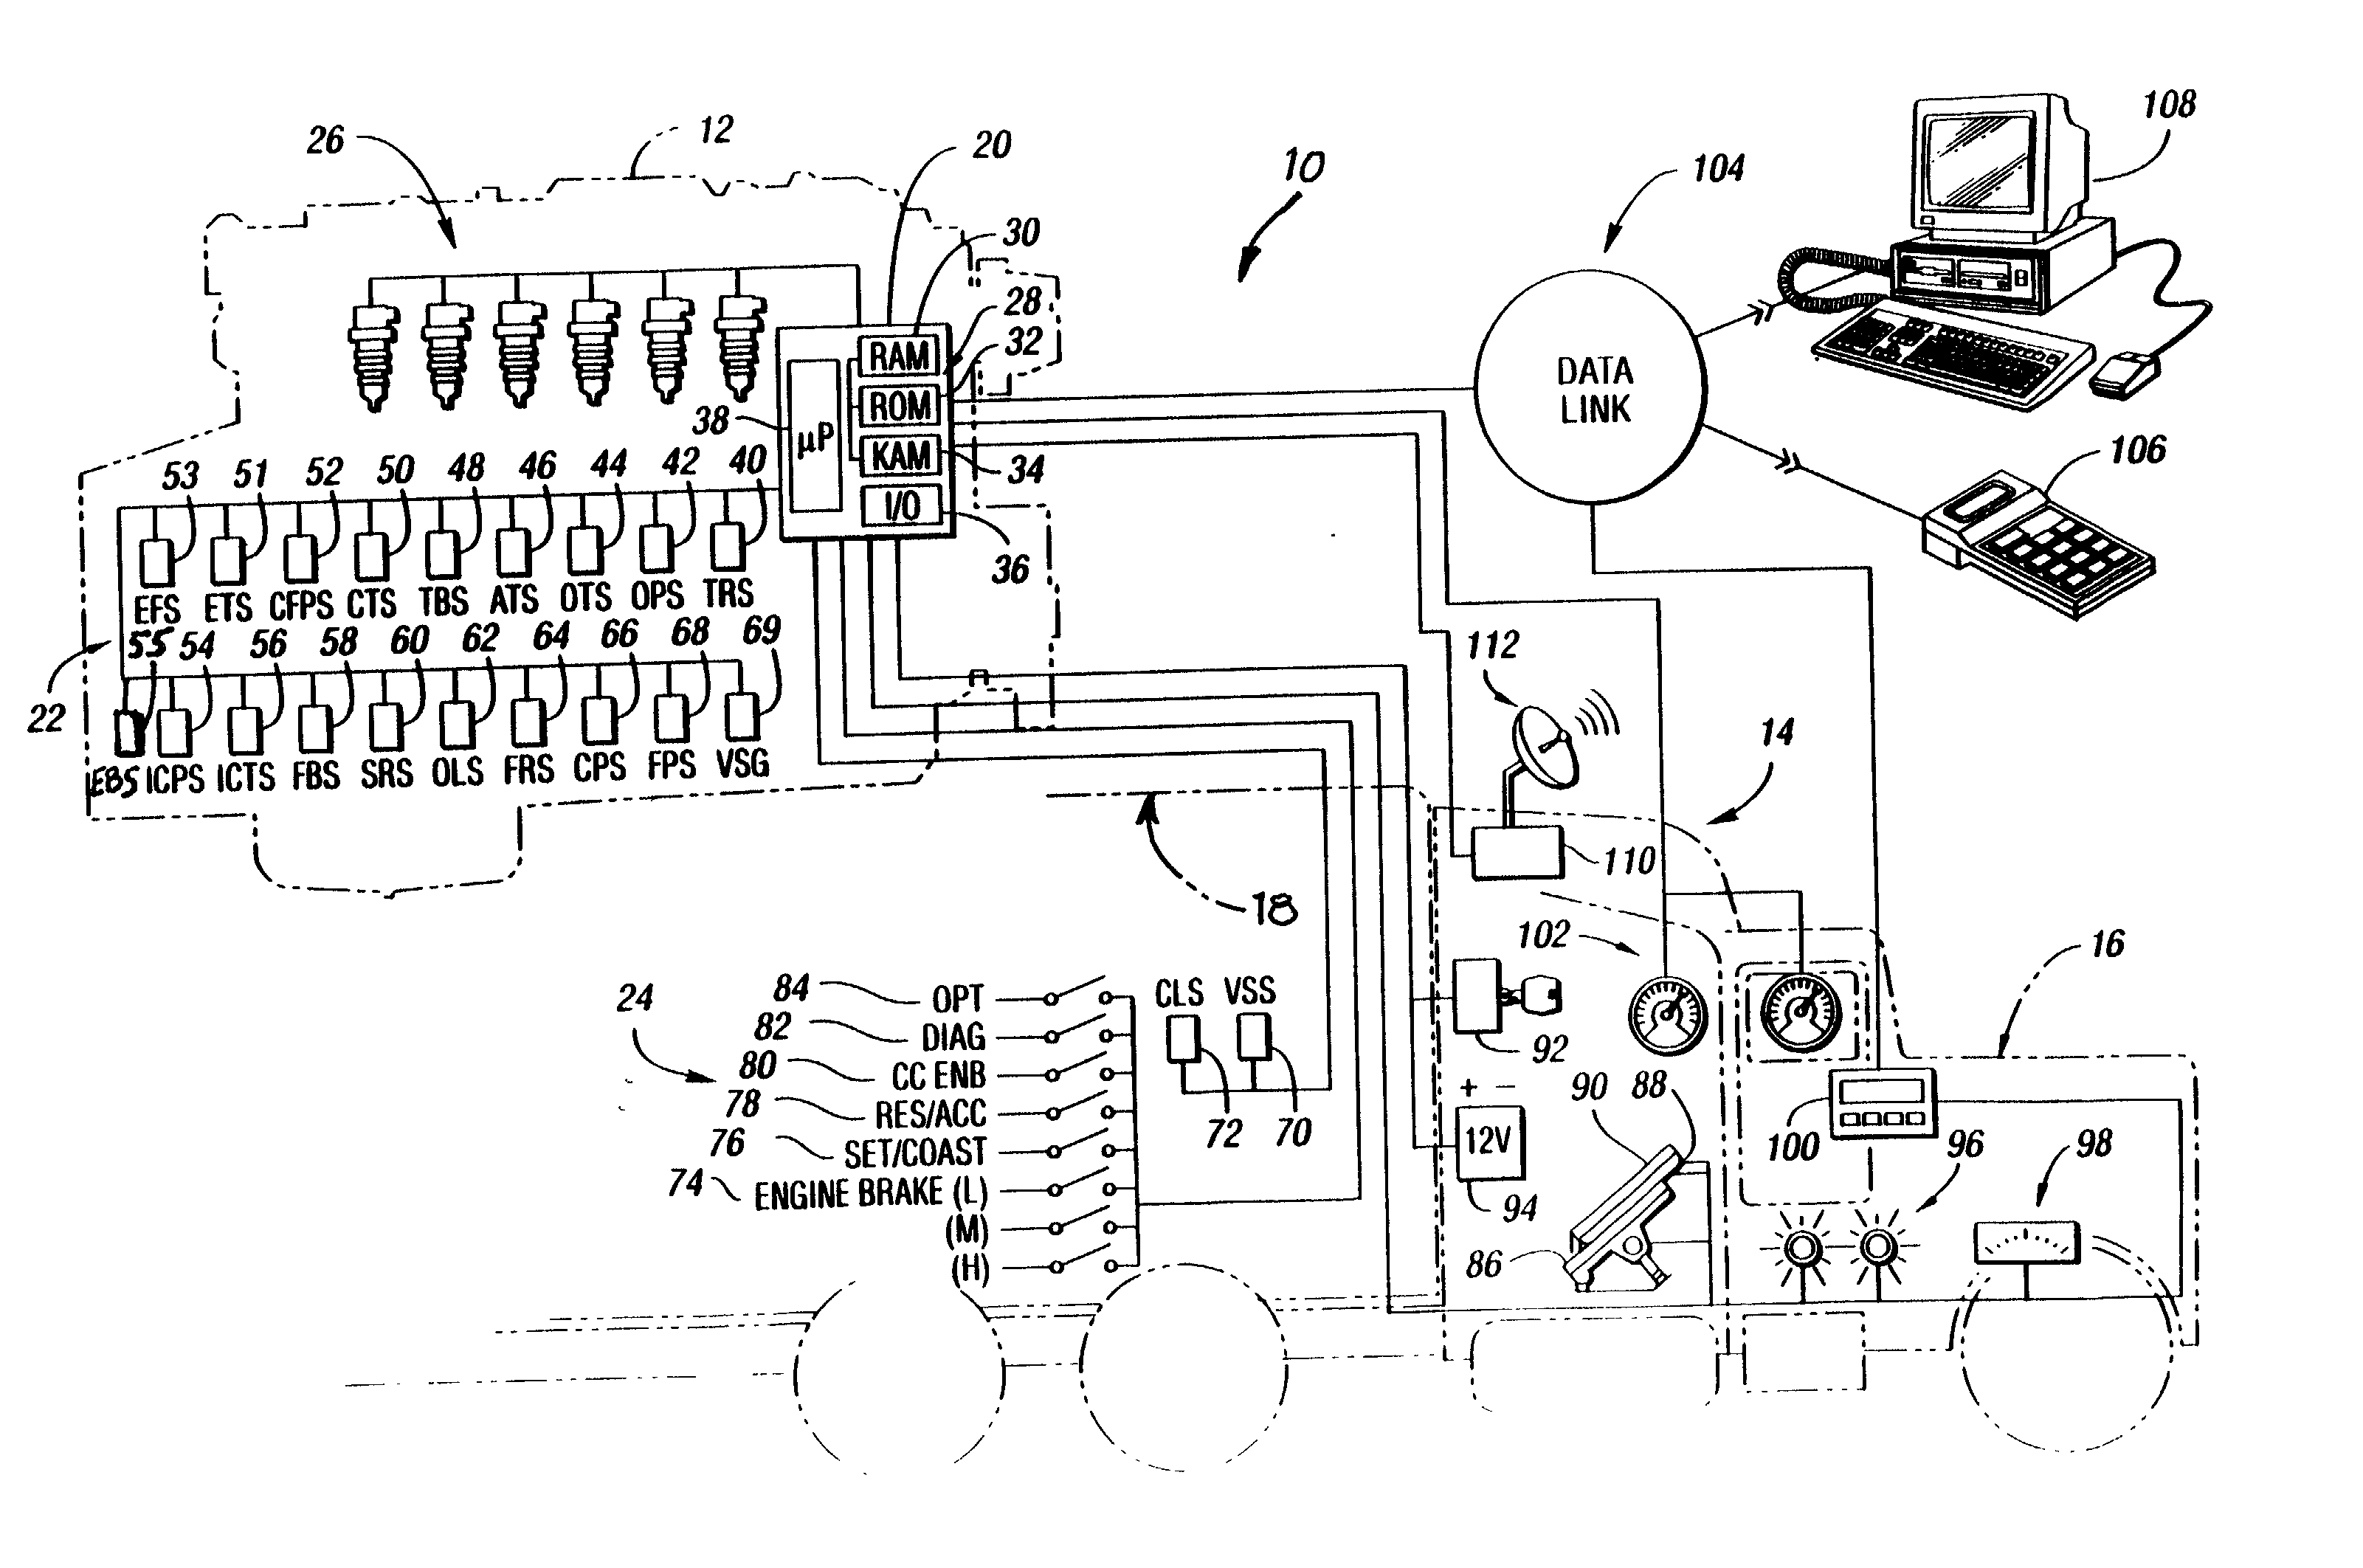 mercedes 108 air conditioner wiring diagrams  u2022 wiring